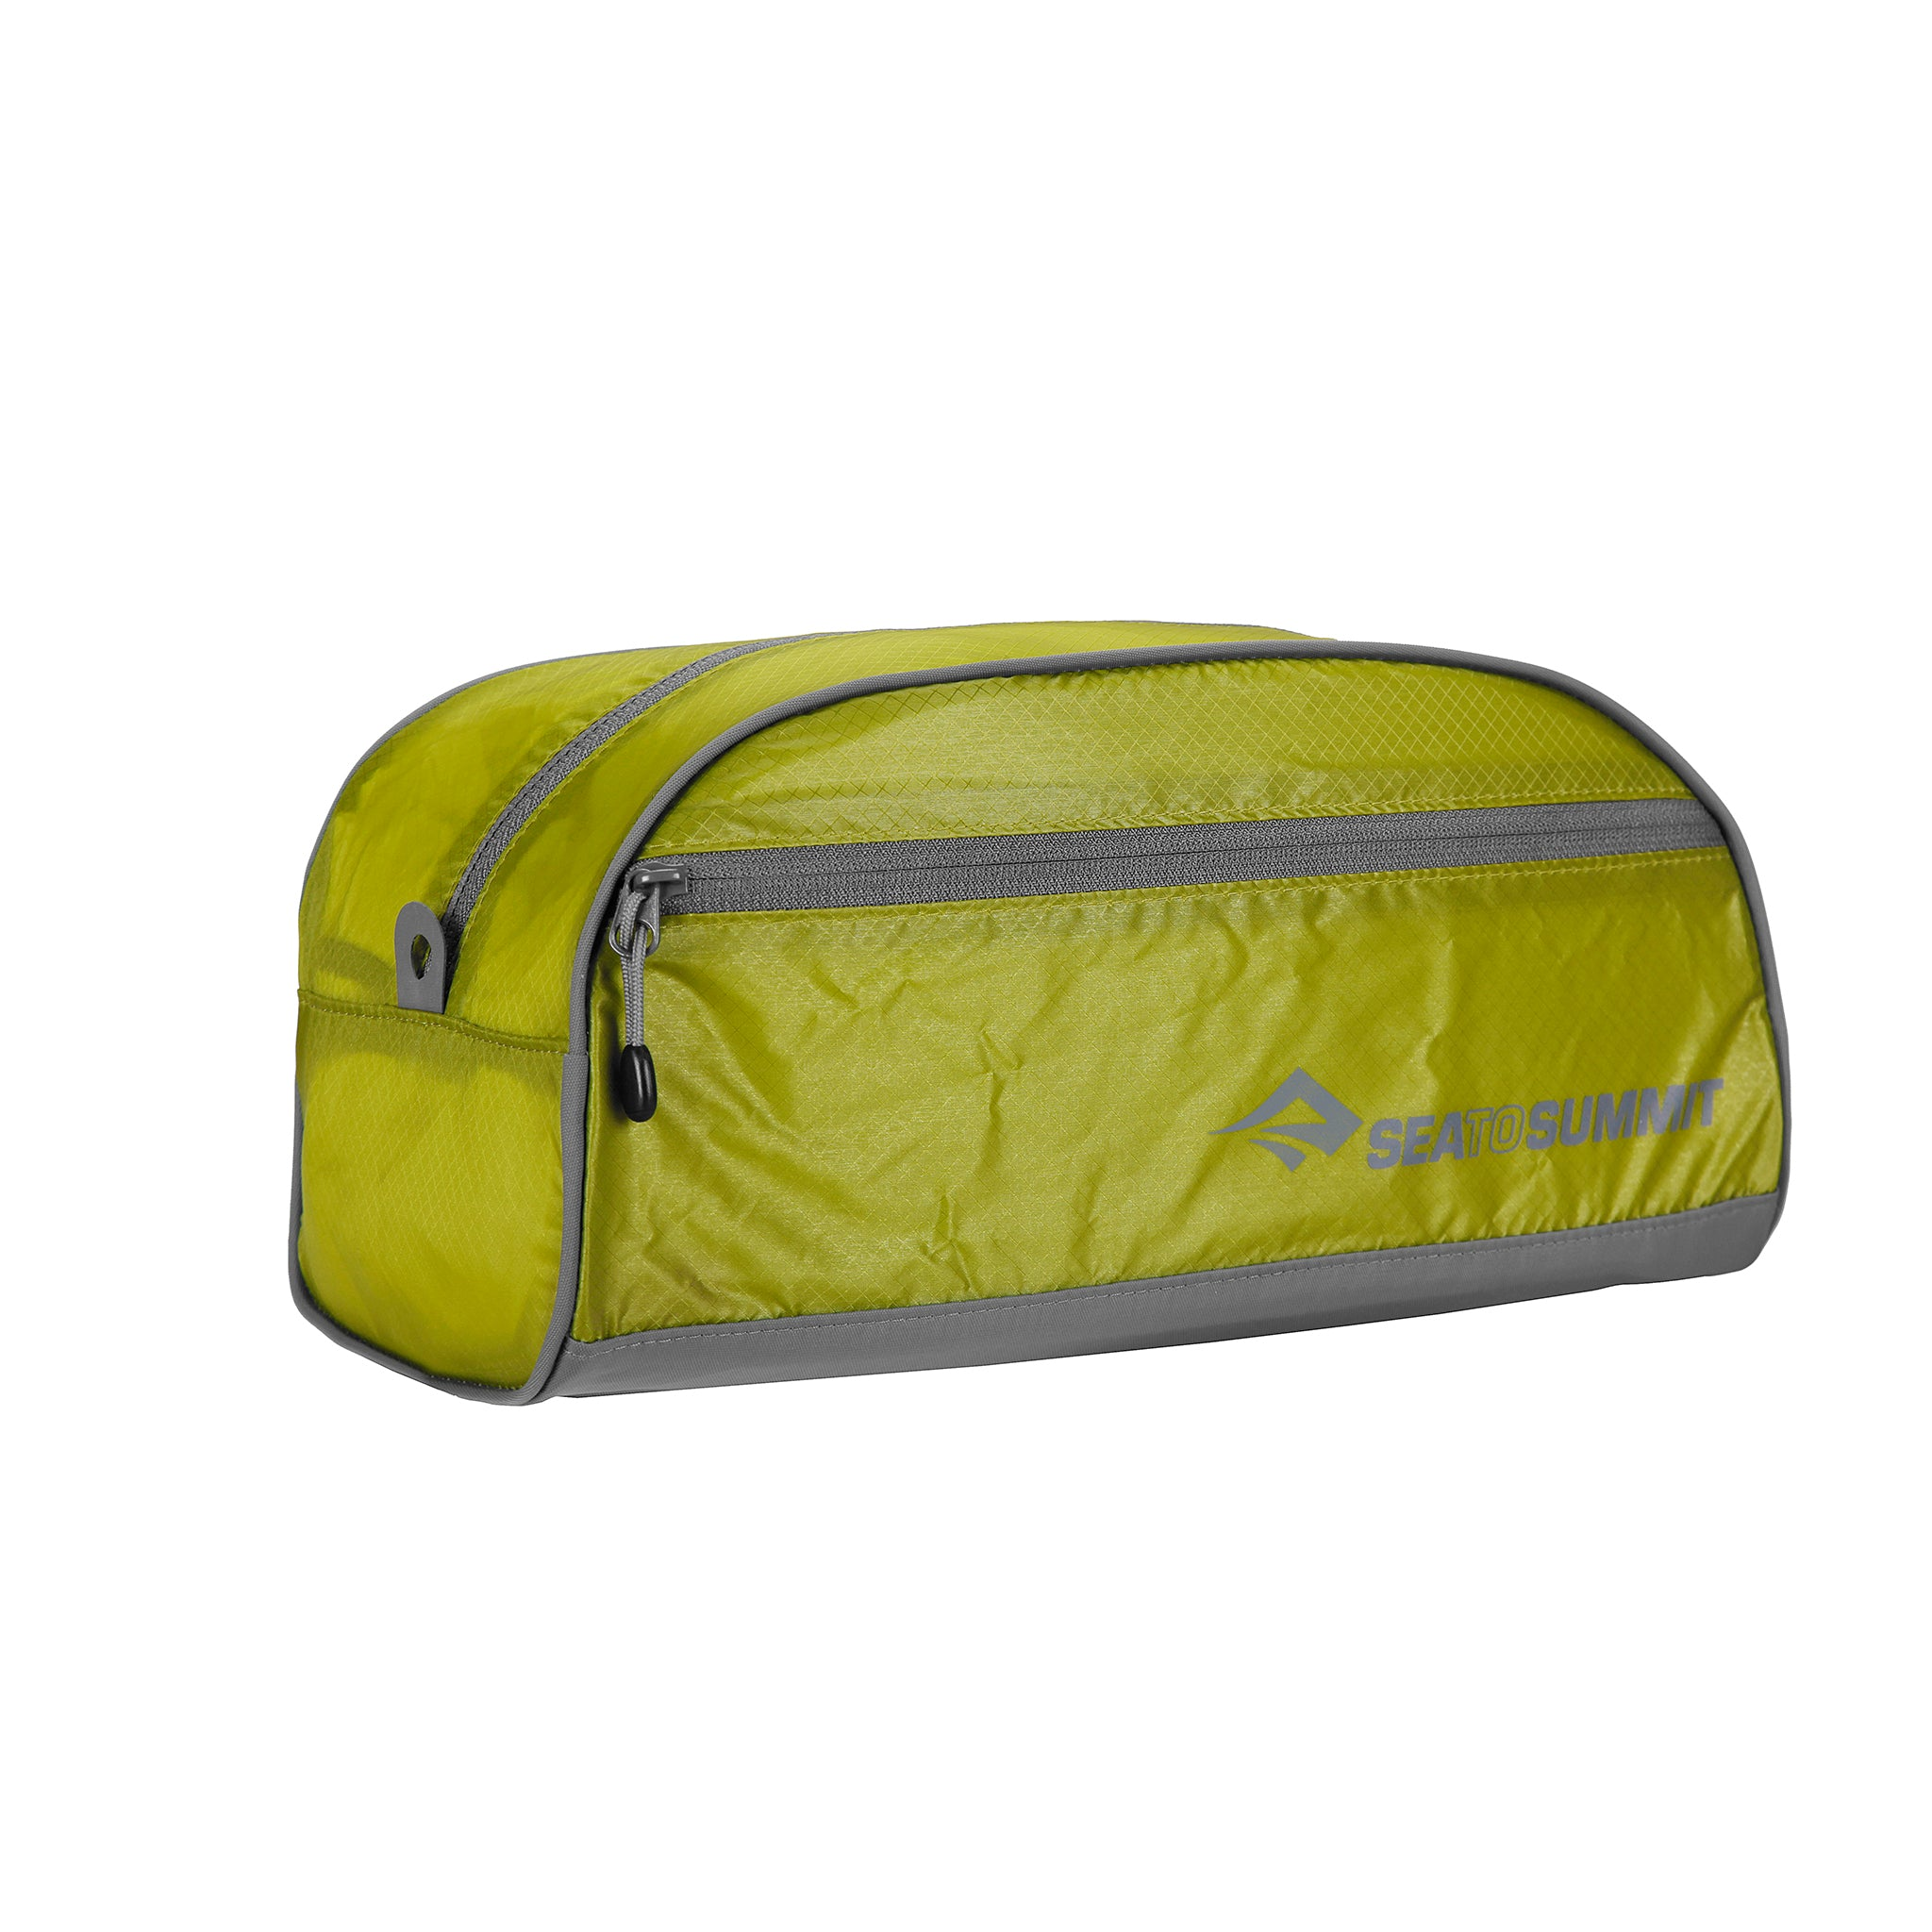 Travelling Light _Toiletry Bag _ waterproof _ large _ lime